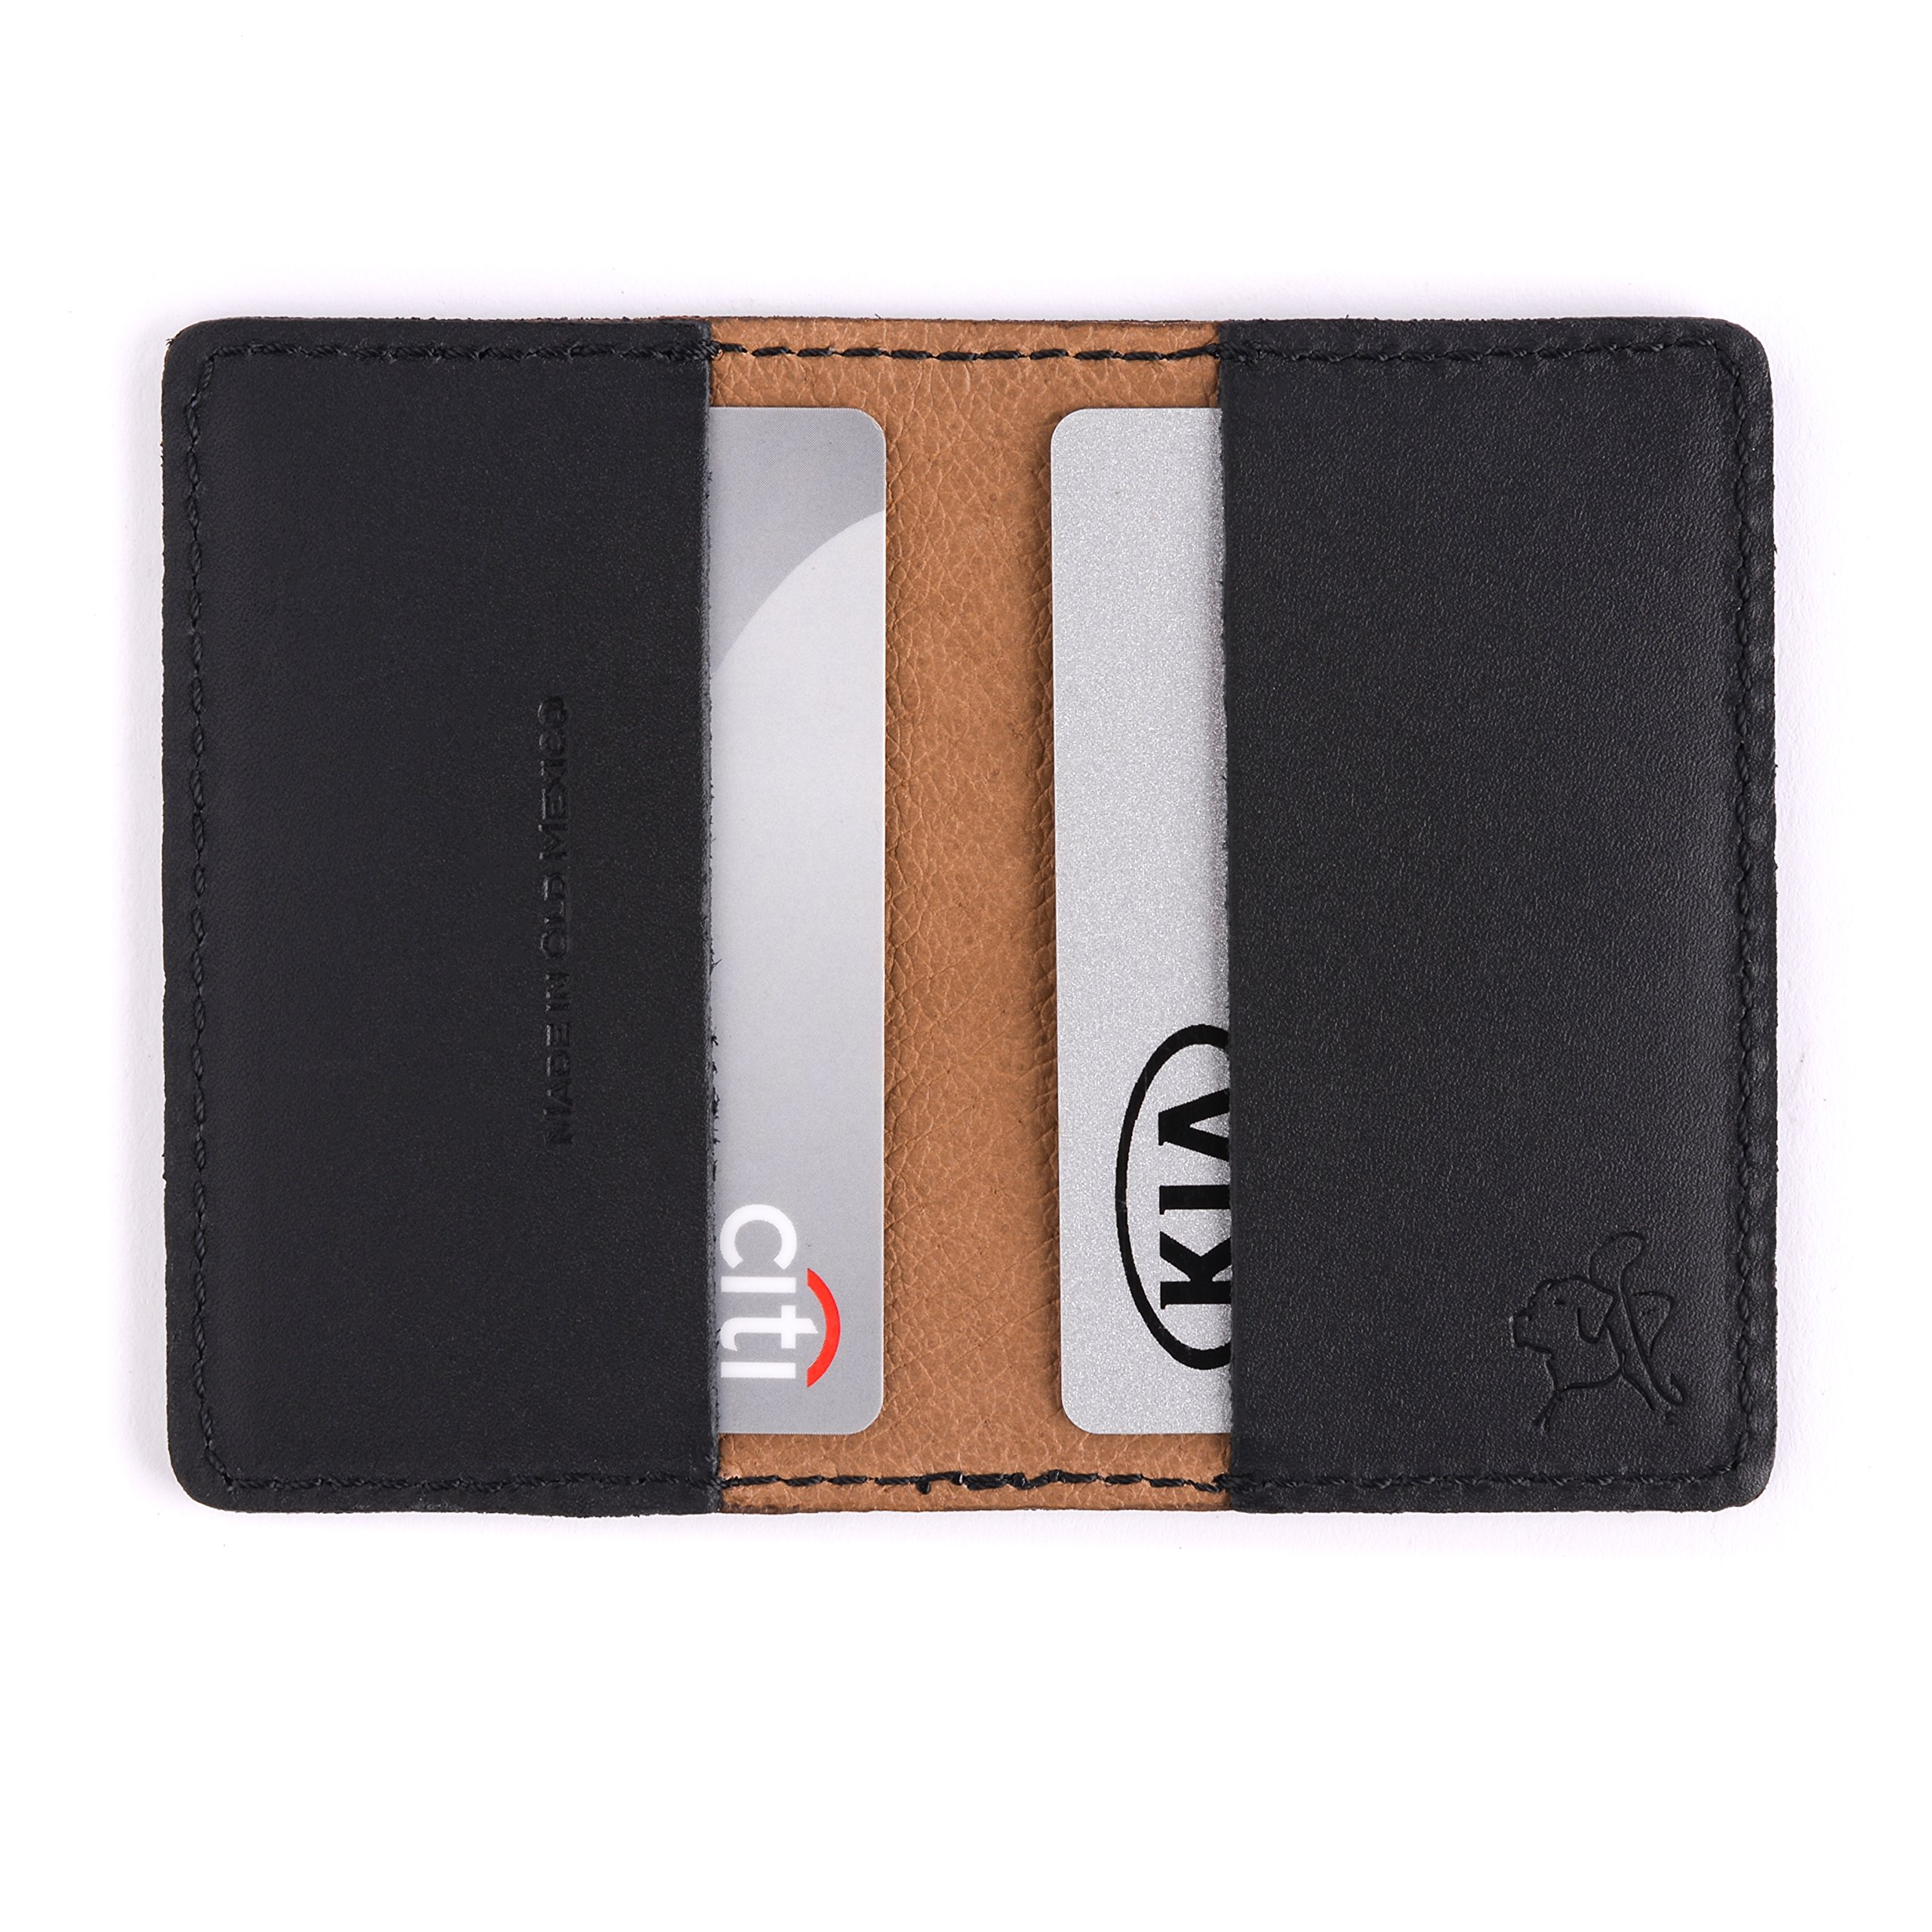 Saddleback Leather Co. Slim Multi Business Card Holder for Men and Women Includes 100 Year Warranty